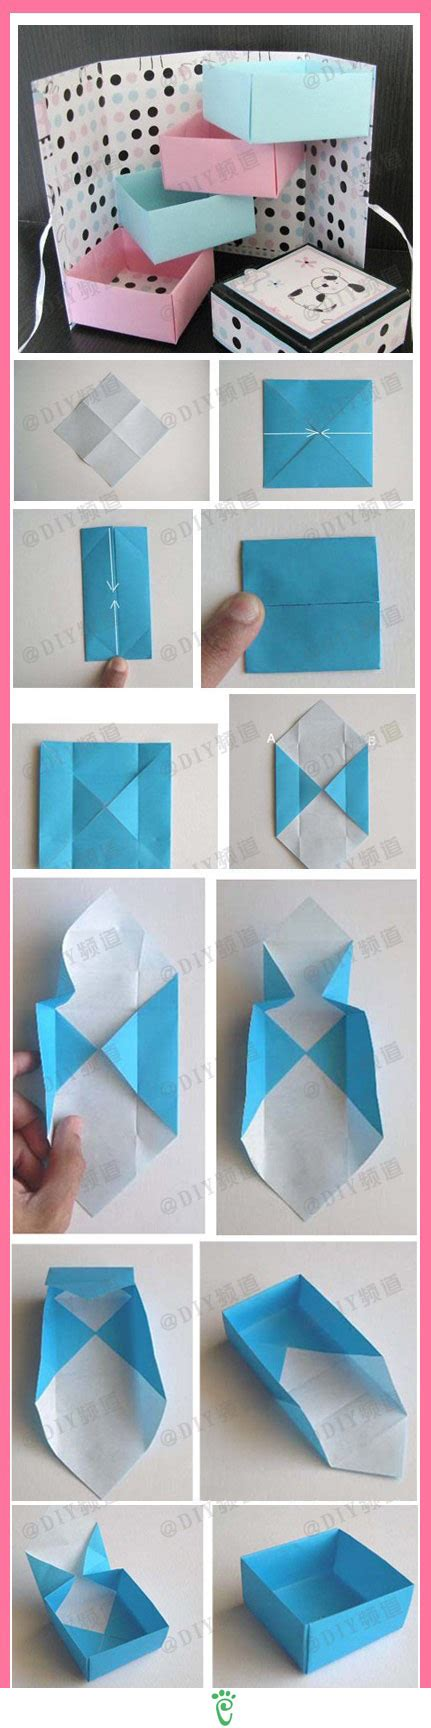 origami boat t shirt story diy paper box pictures photos and images for facebook